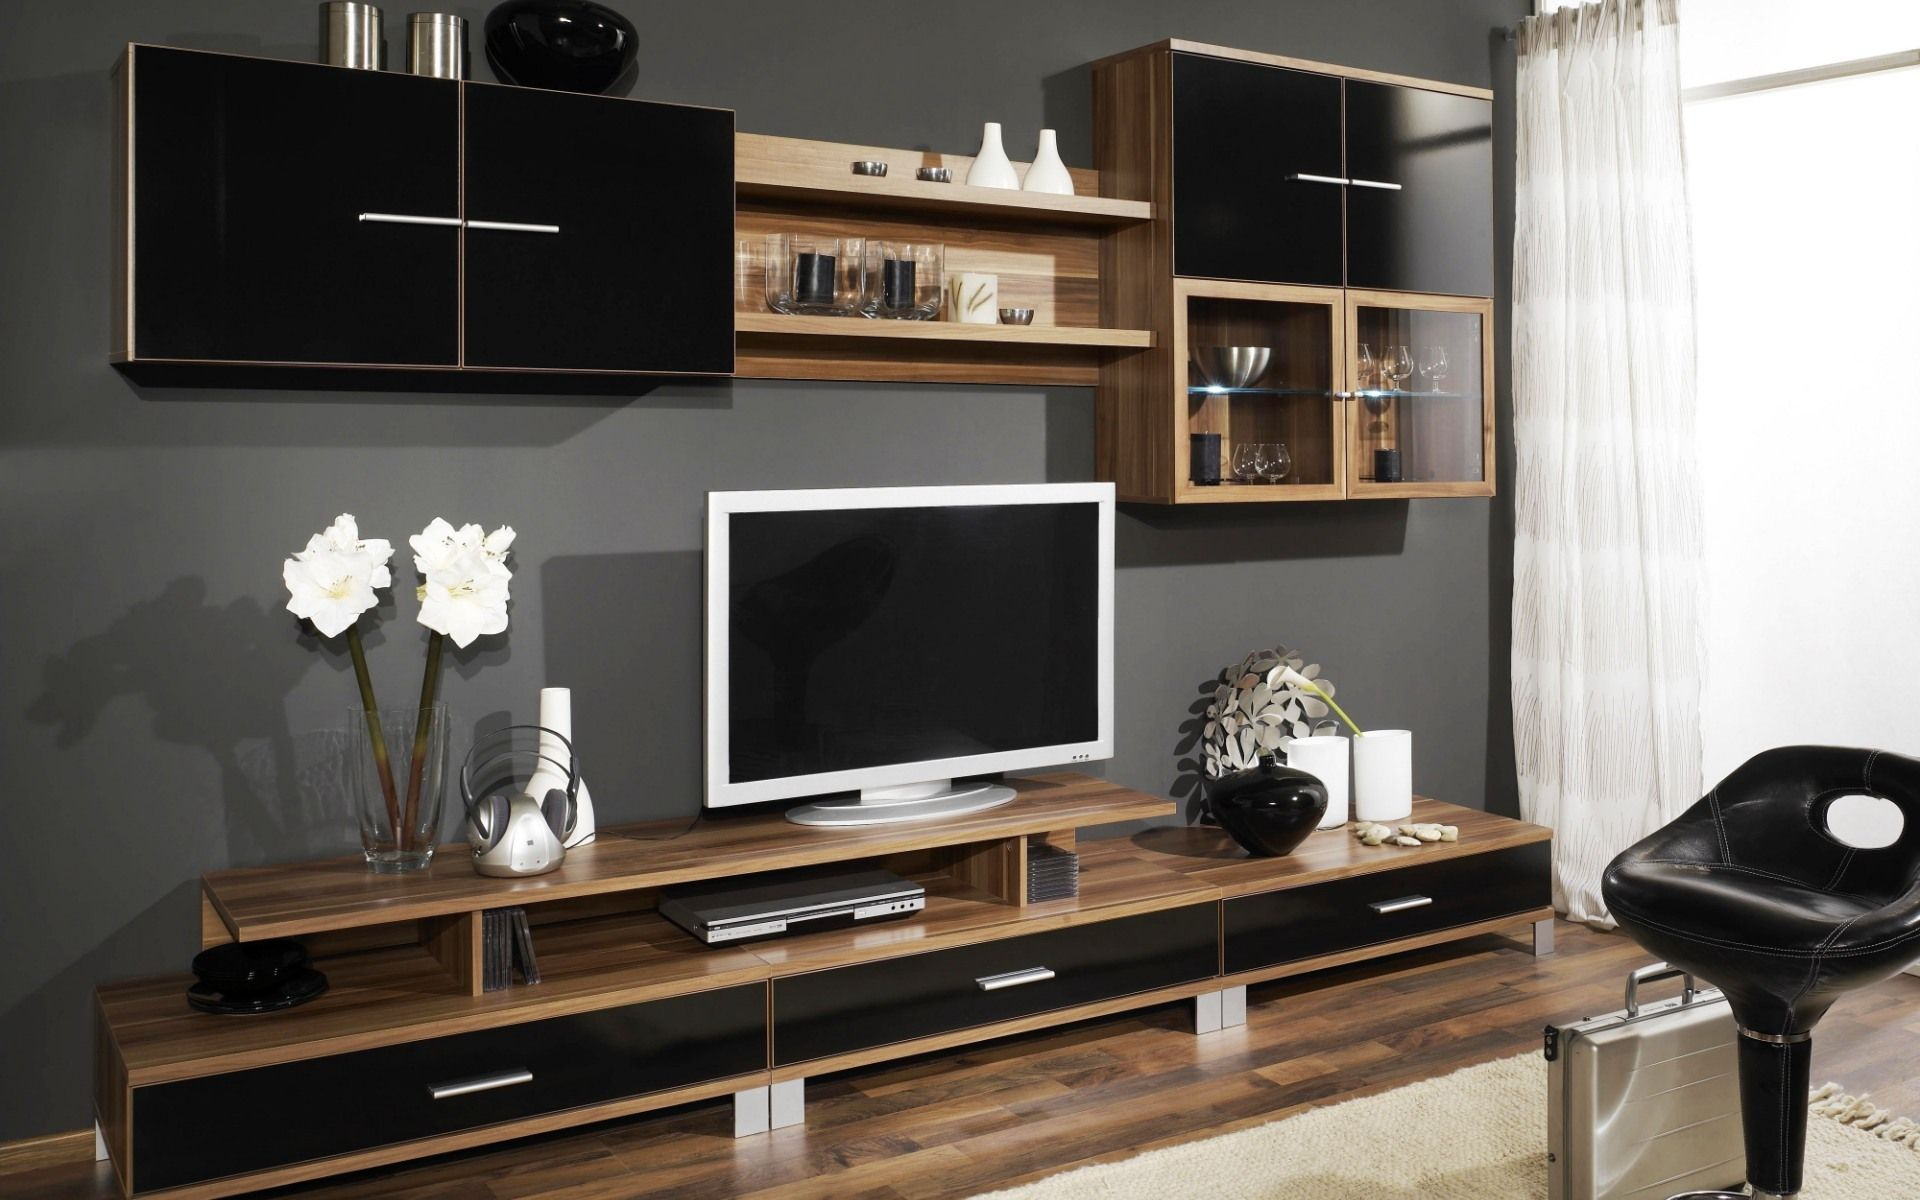 Image Result For Videogame Corner In Living Room  Around The Home Entrancing Living Room Corner Furniture Designs Inspiration Design